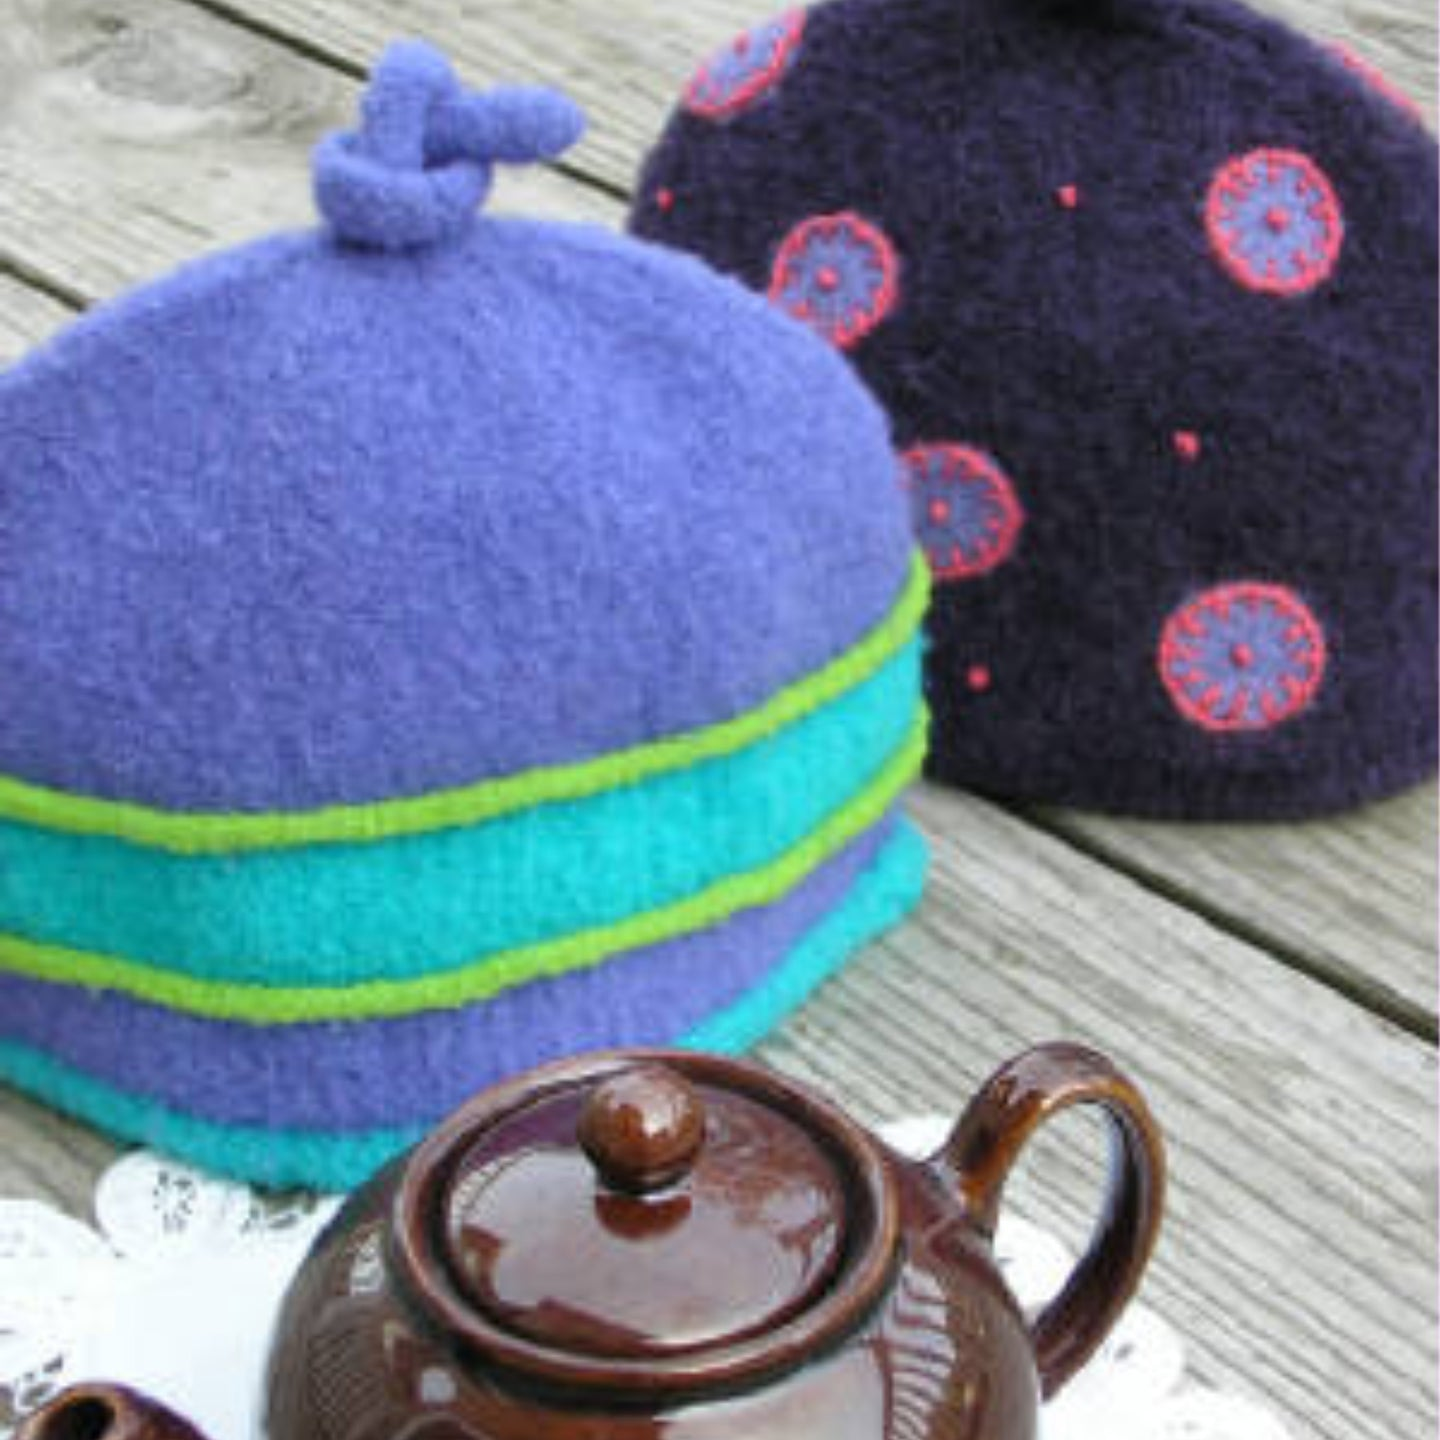 Marie Mayhew's Woolly 2-Cup Tea Cozy pattern